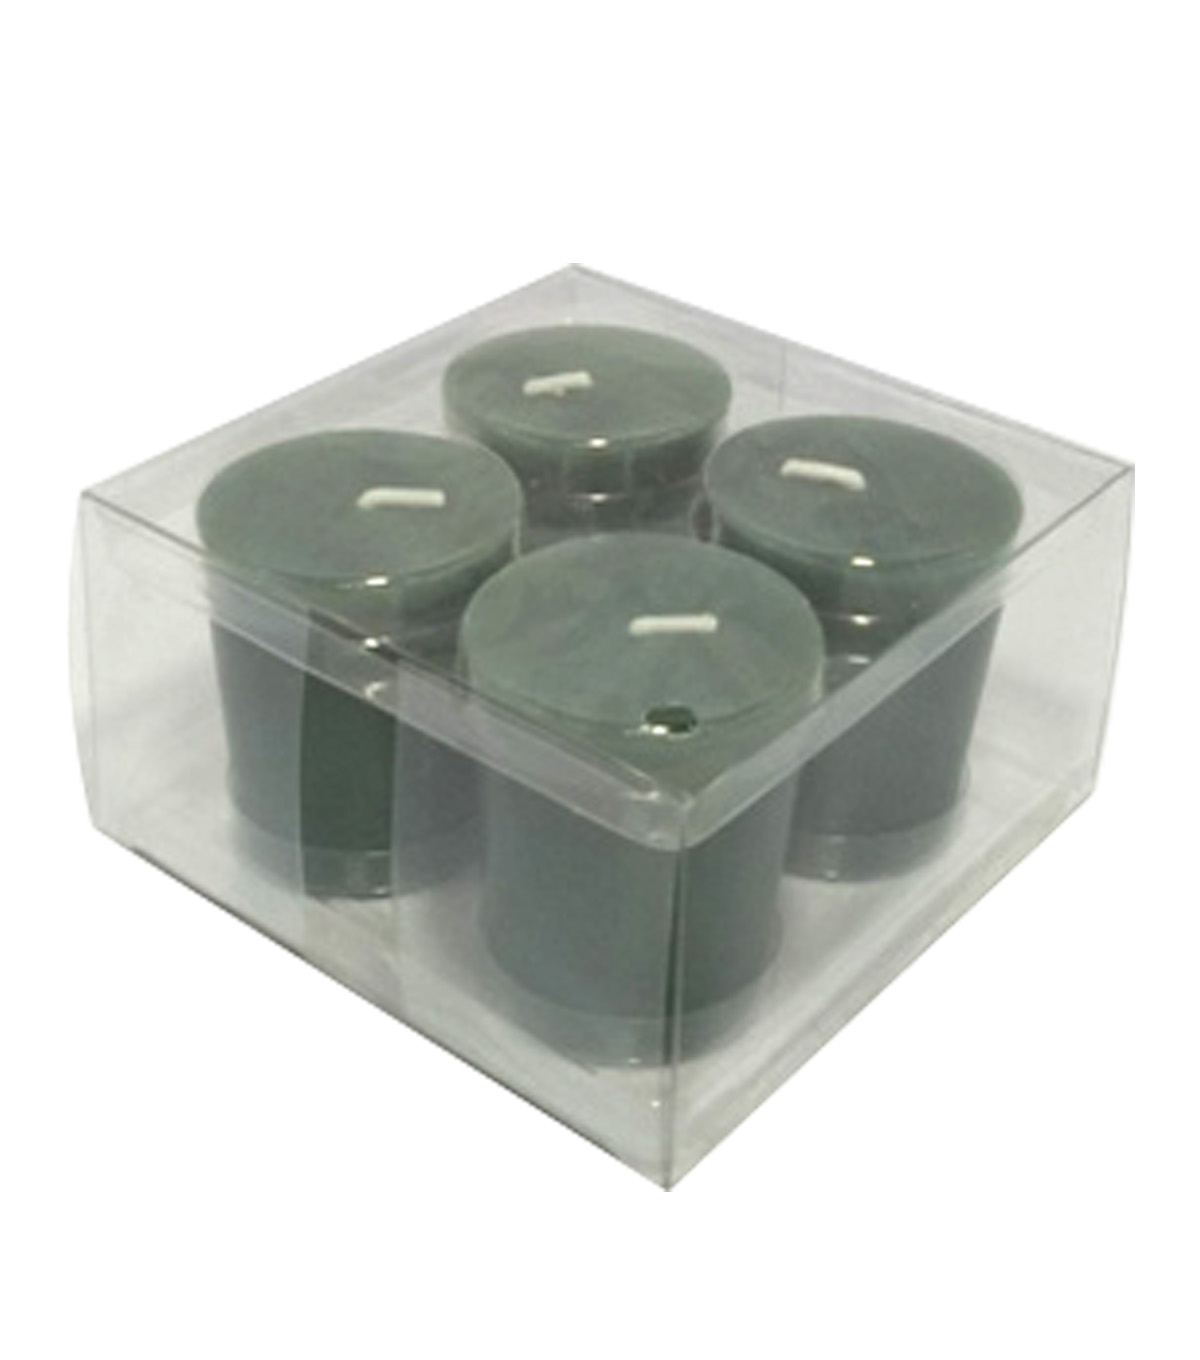 Maker\u0027s Holiday Christmas 4 pk Woodland Pine Scented Votive Candle-Green